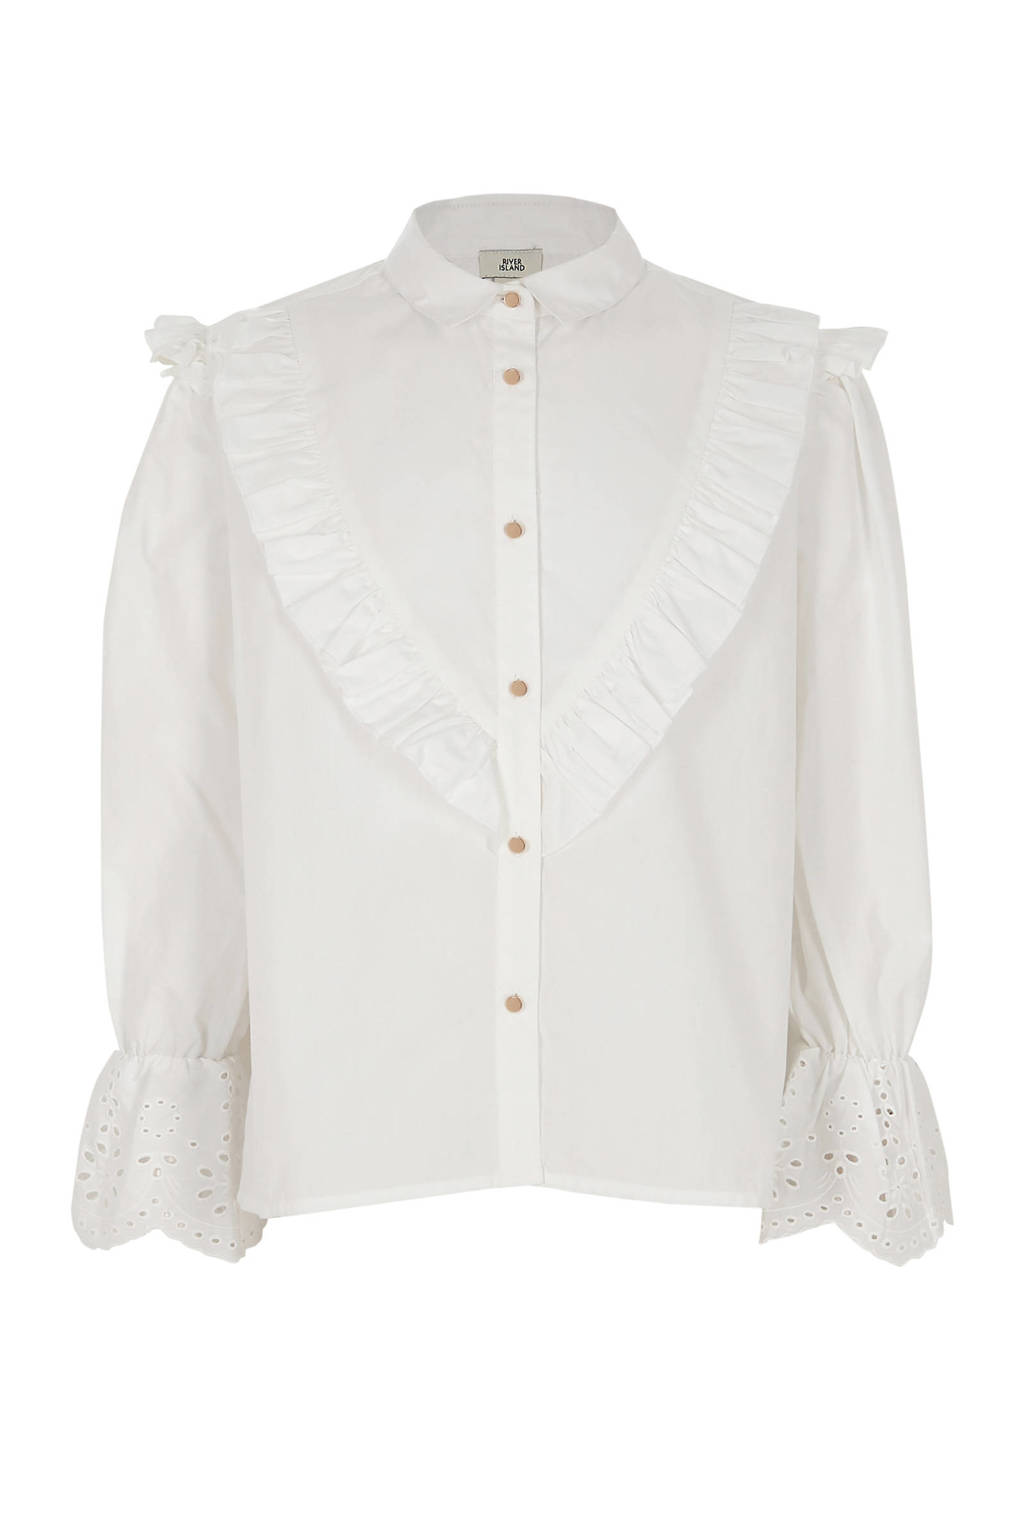 River Island blouse met ruches, Wit